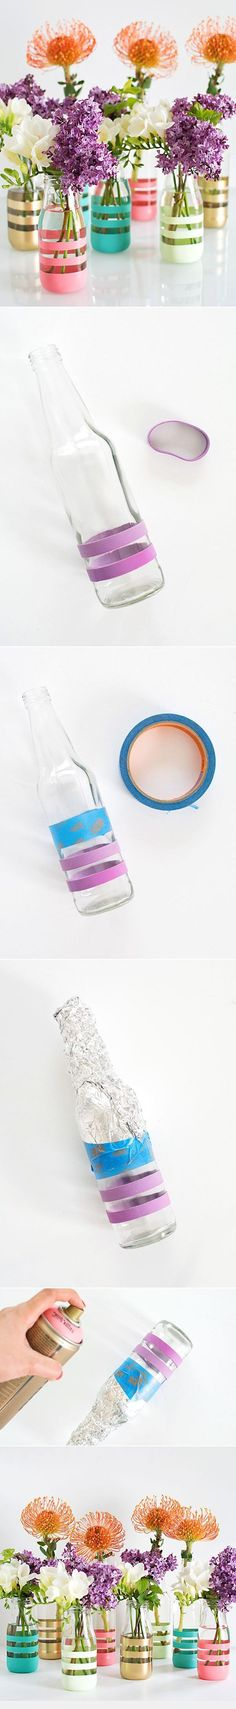 DIY Upcycling Glass Bottles Into Vases